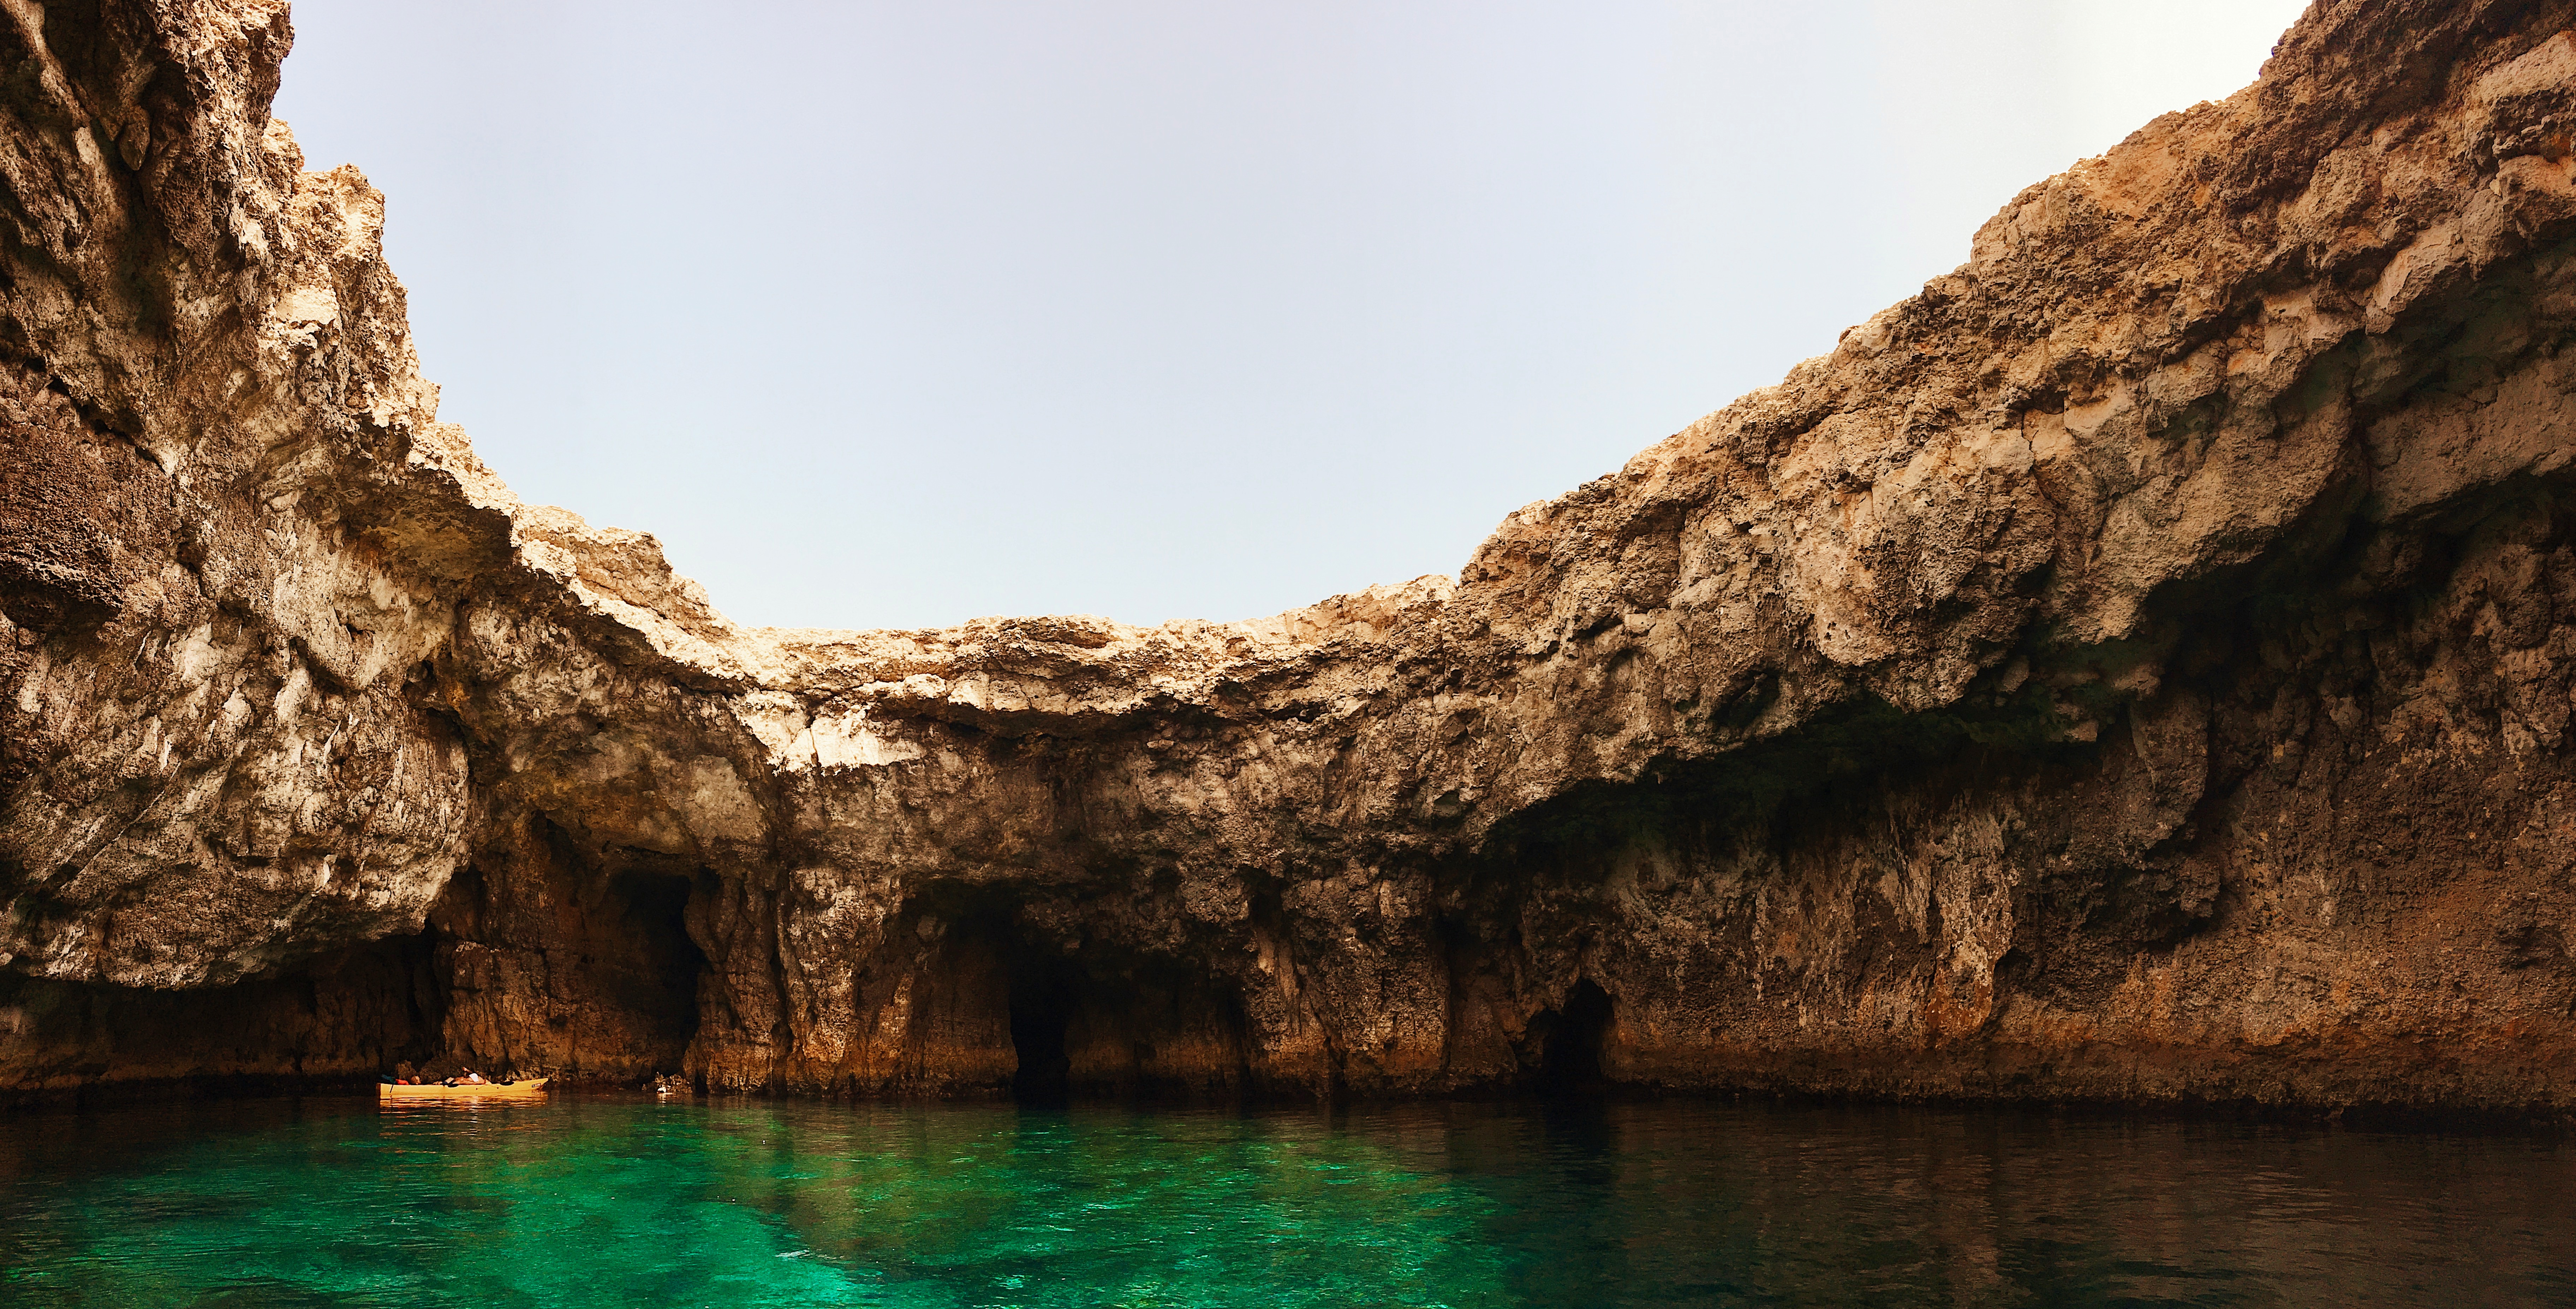 Have you been to this collapsed cave in Mellieha? 😍